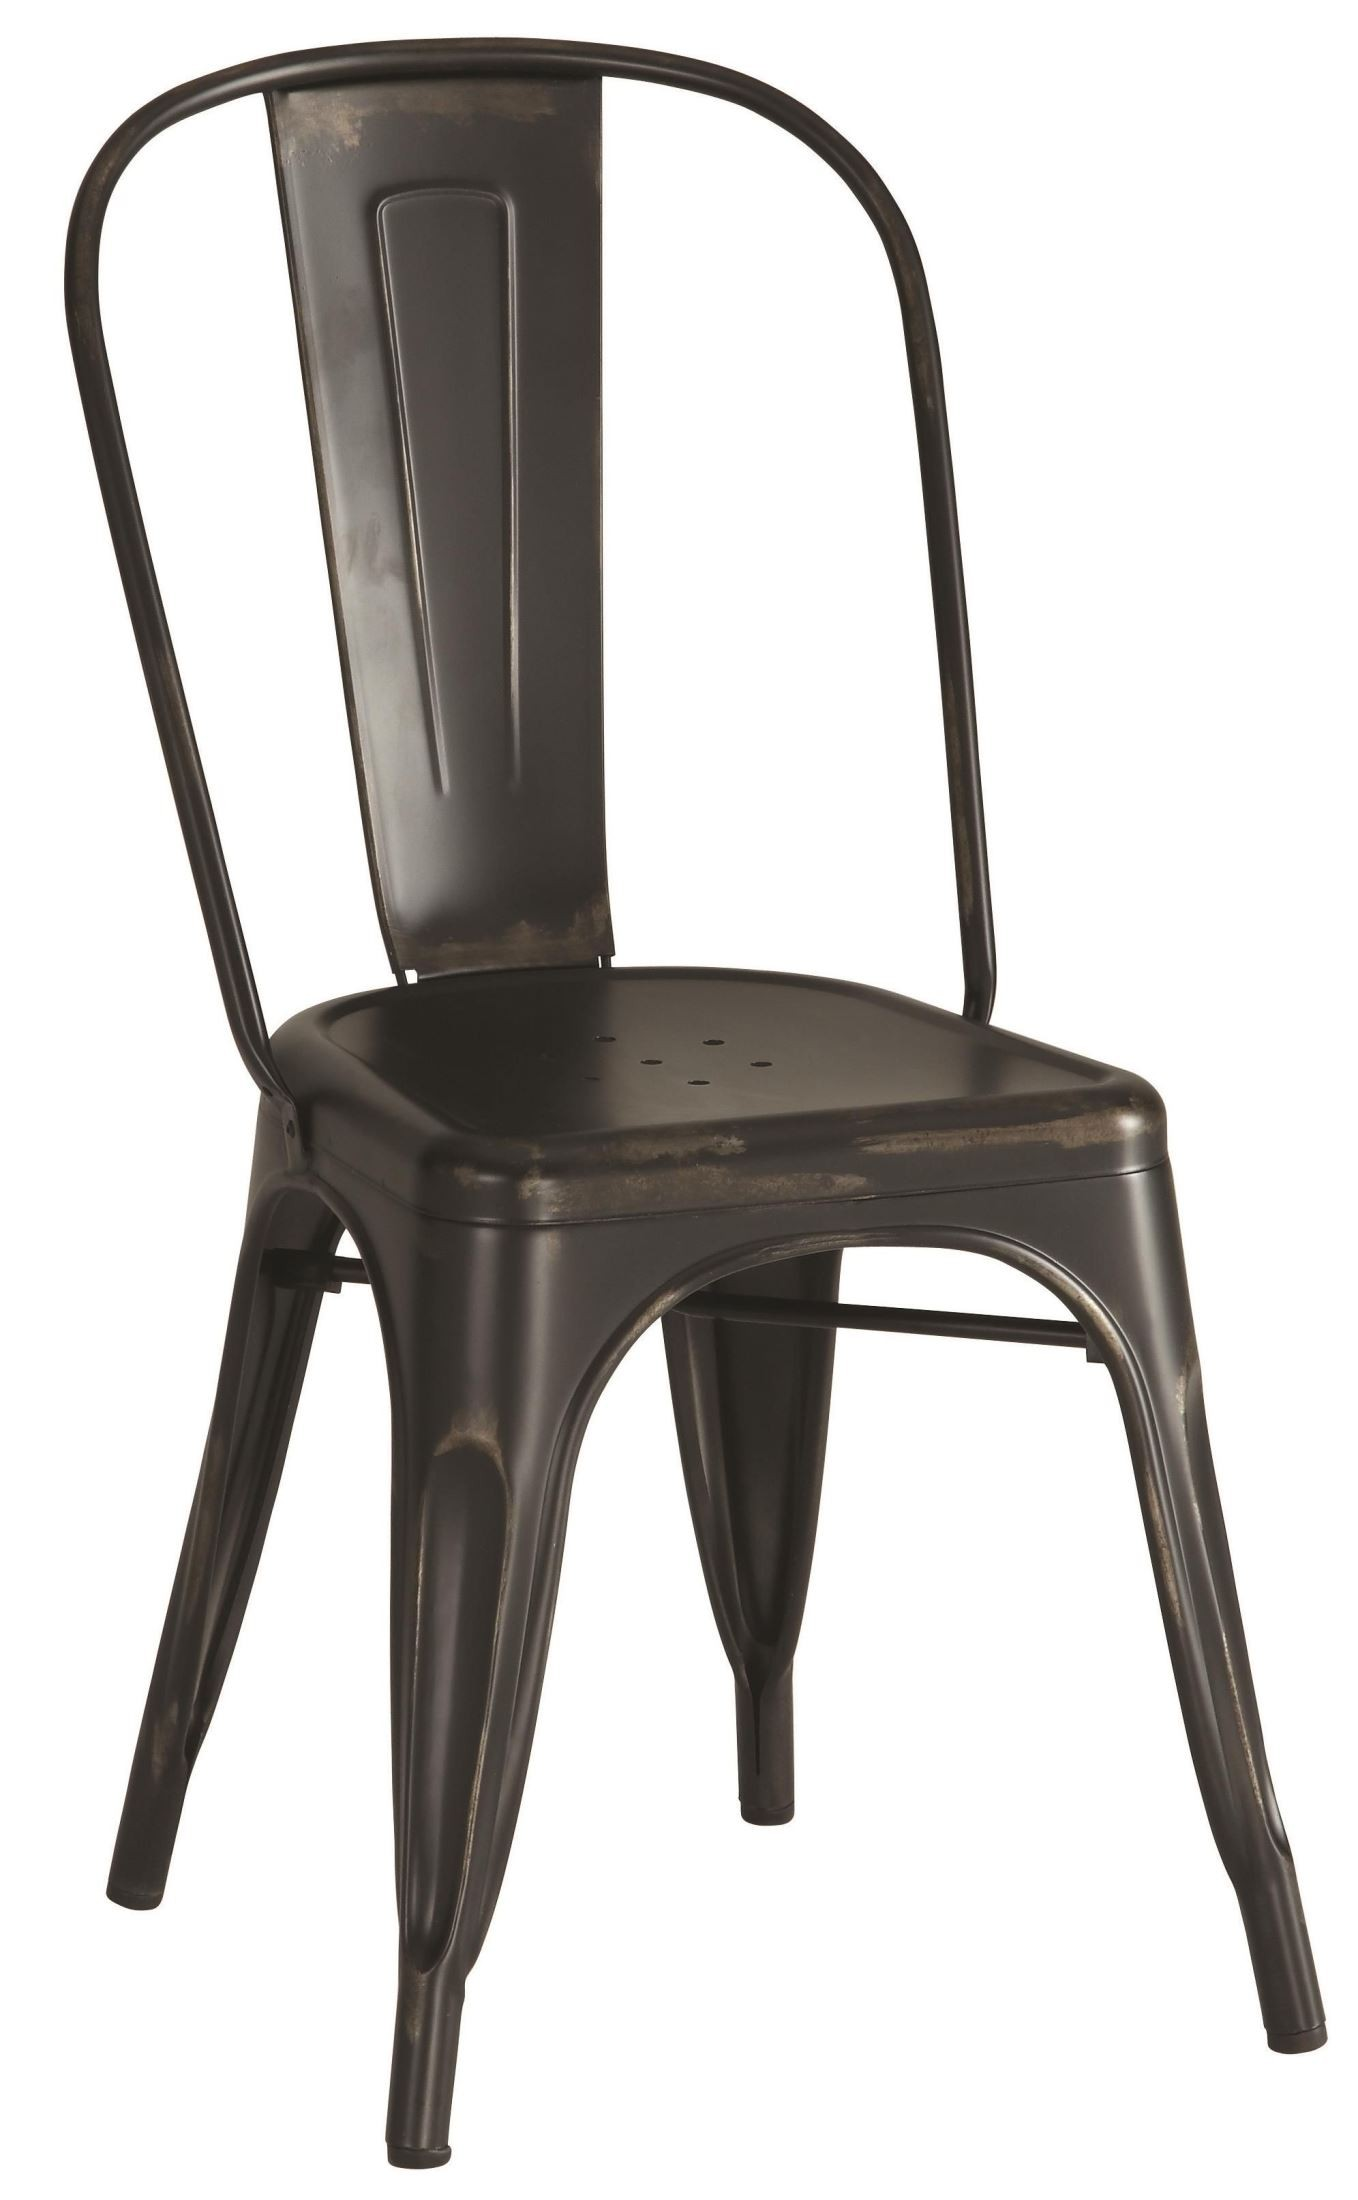 Black Metal Dining Chairs Bellevue Black Metal Dining Chair Set Of 4 From Coaster